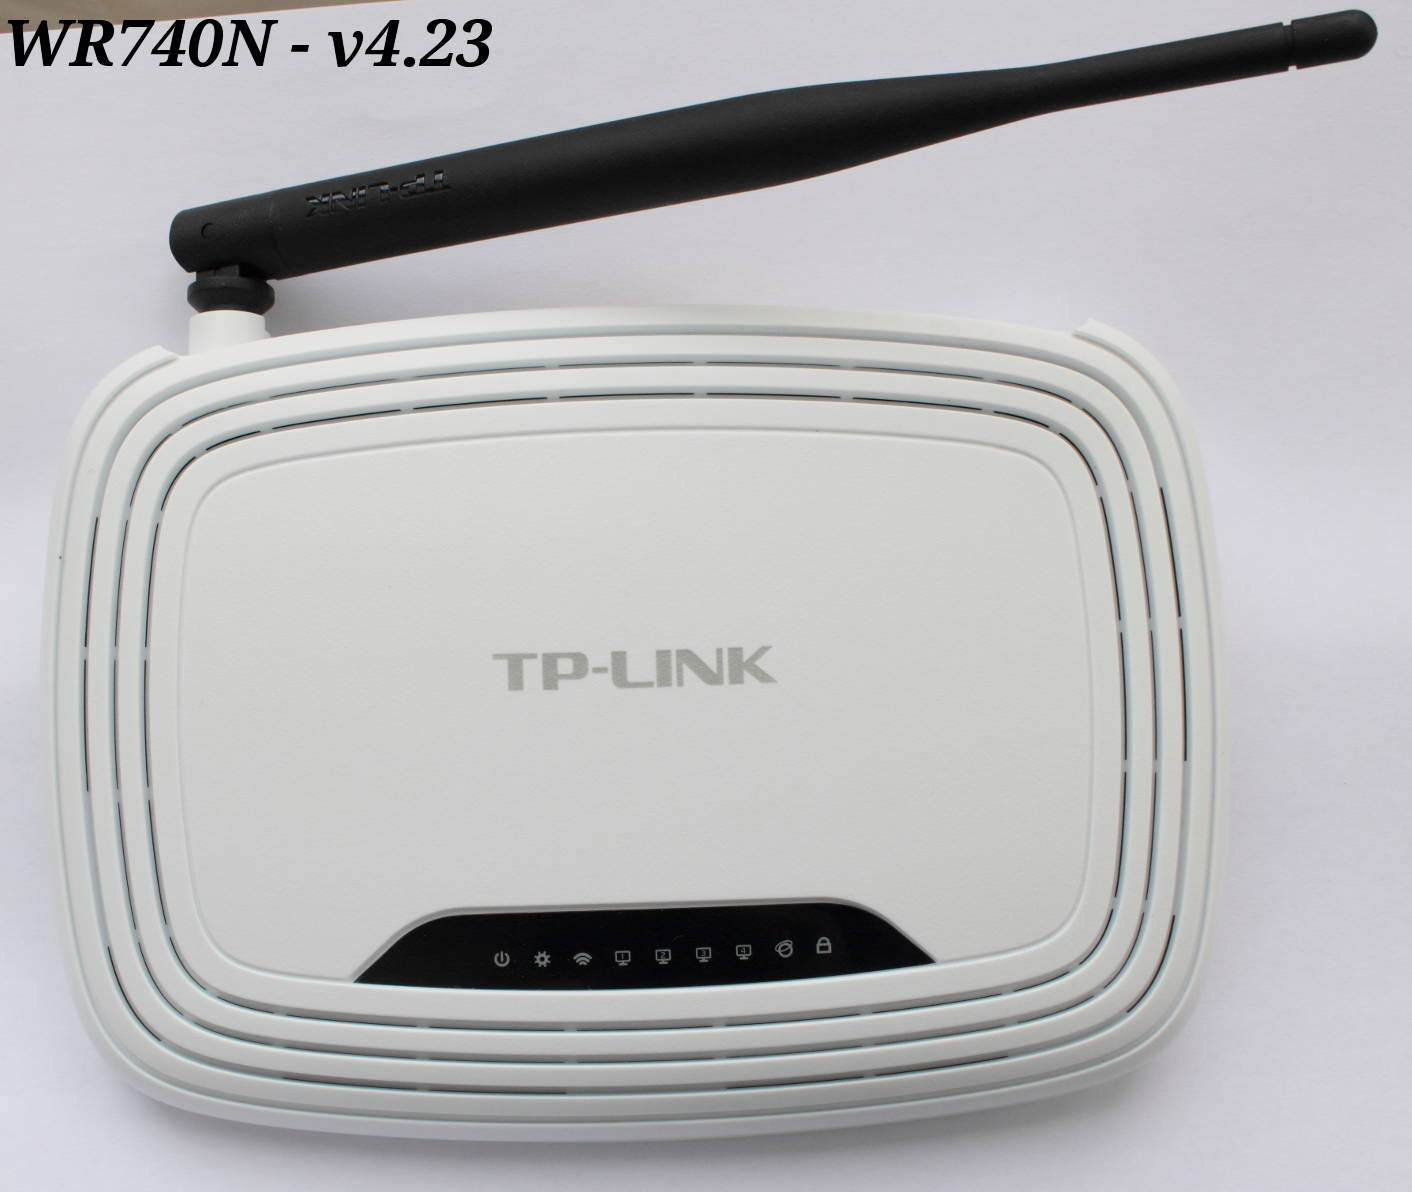 TP-LINK TL-WR740N V1 ROUTER WINDOWS 8 DRIVER